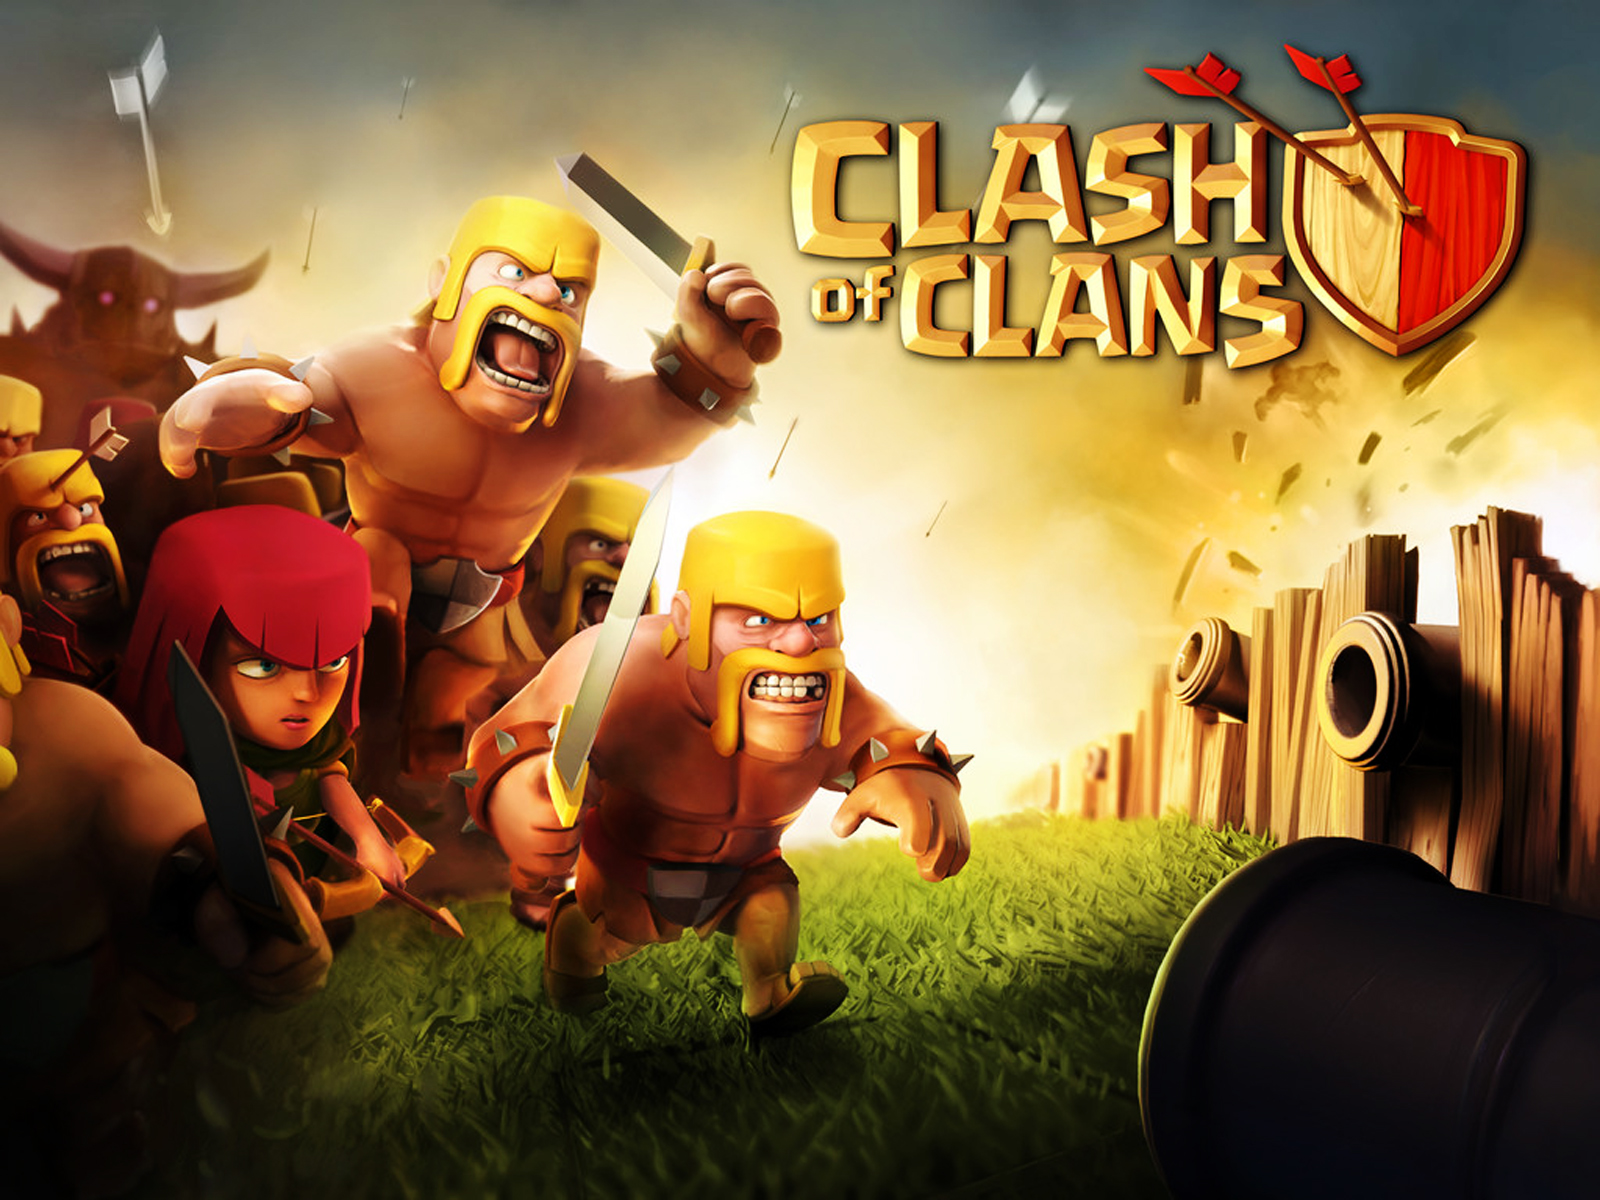 of clans wallpaper - photo #13